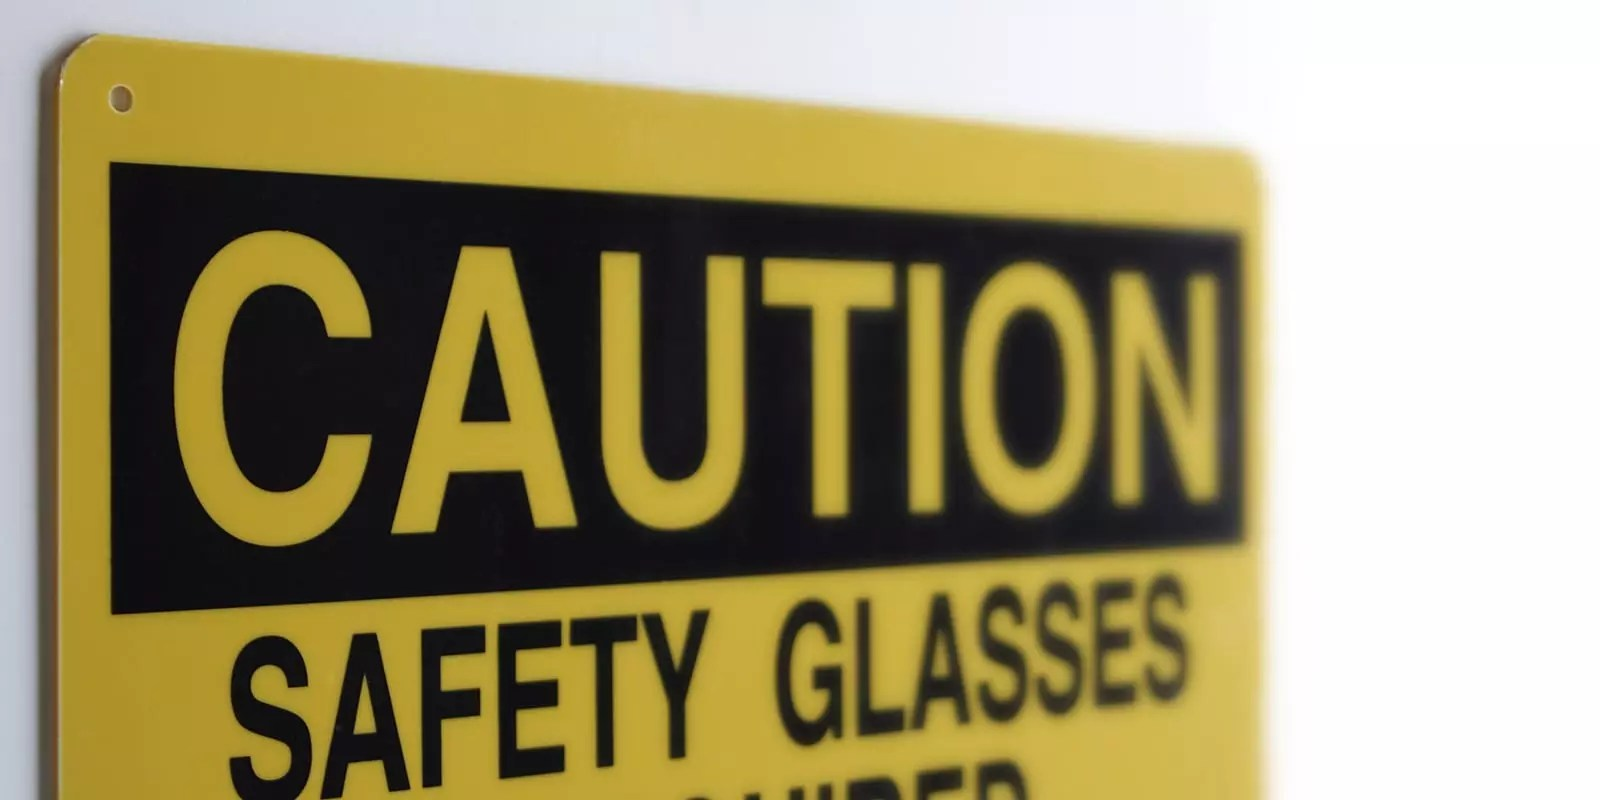 Warehouse Safety Signs and Warehouse Facility Signs  ASG